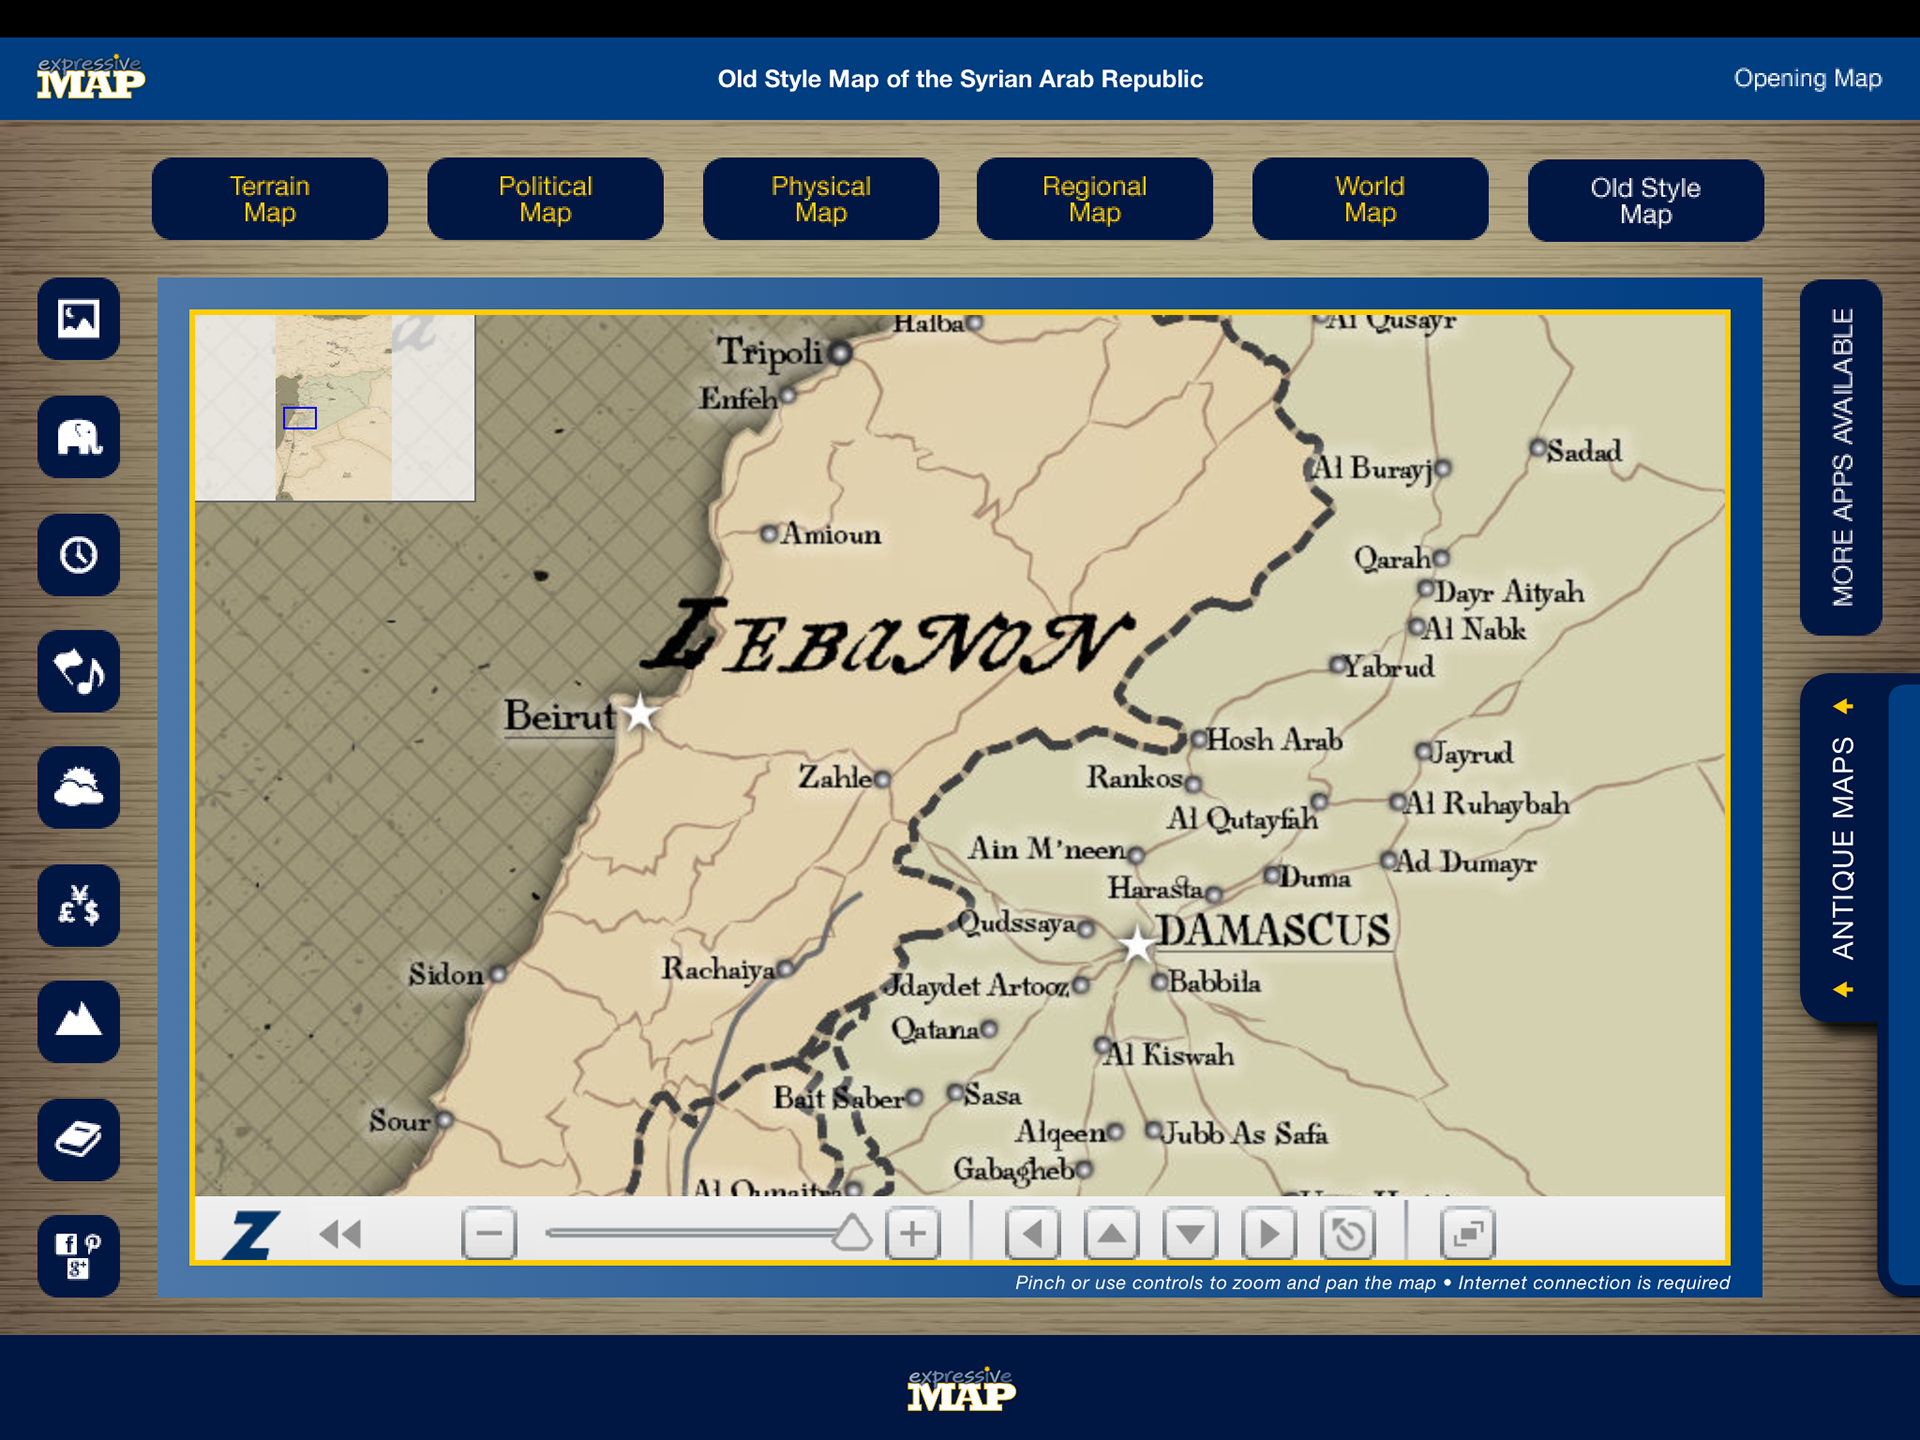 Eric olason mapmaker cartographic artist app syria i have since made a decision to no longer work creating apps in favor of making oversize wall maps for business home and office under the same brand name gumiabroncs Image collections